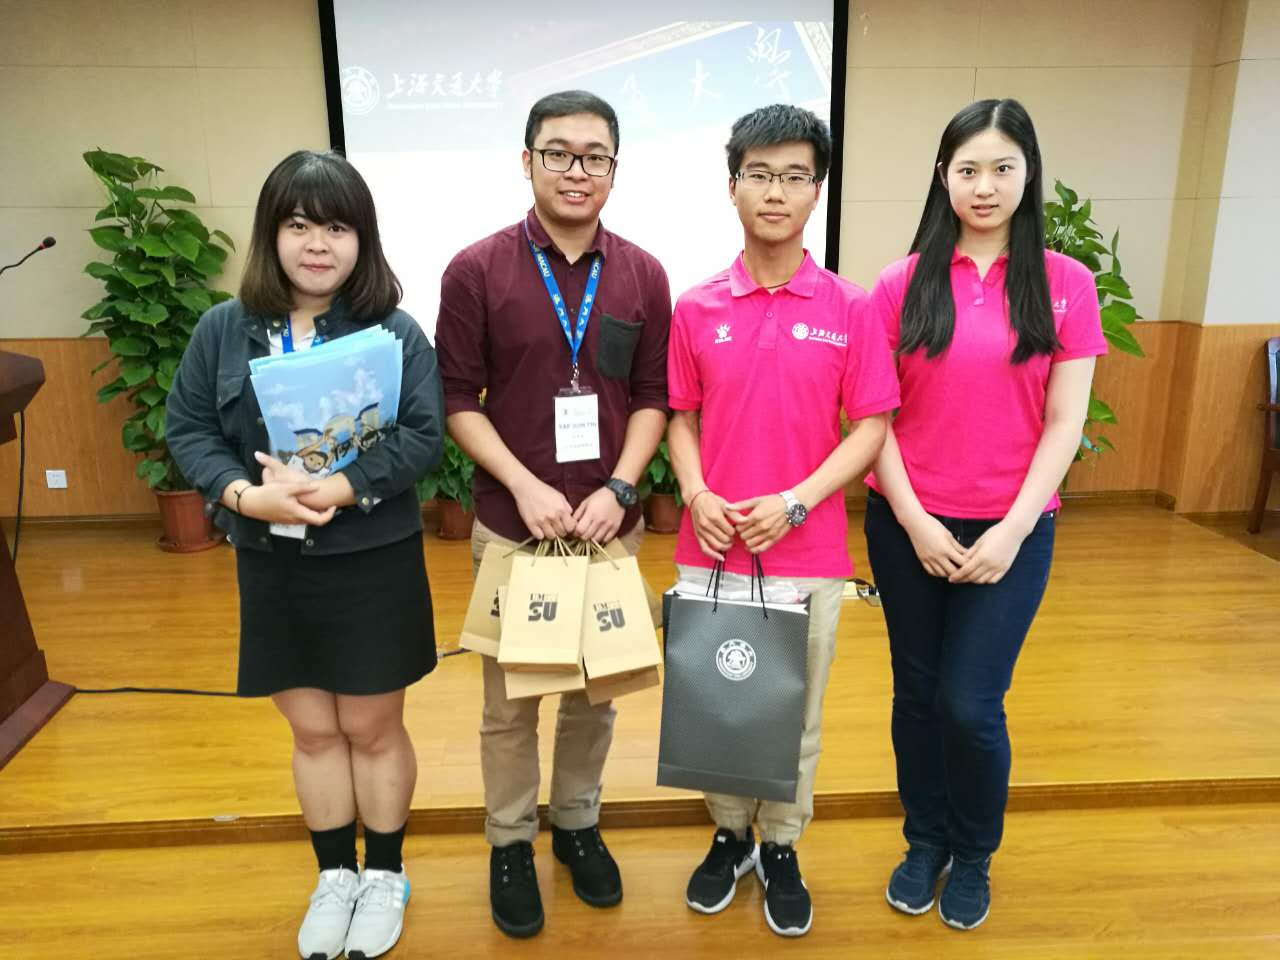 Representatives from UM Students' Union and their counterparts from Shanghai Jiao Tong University exchange souvenirs